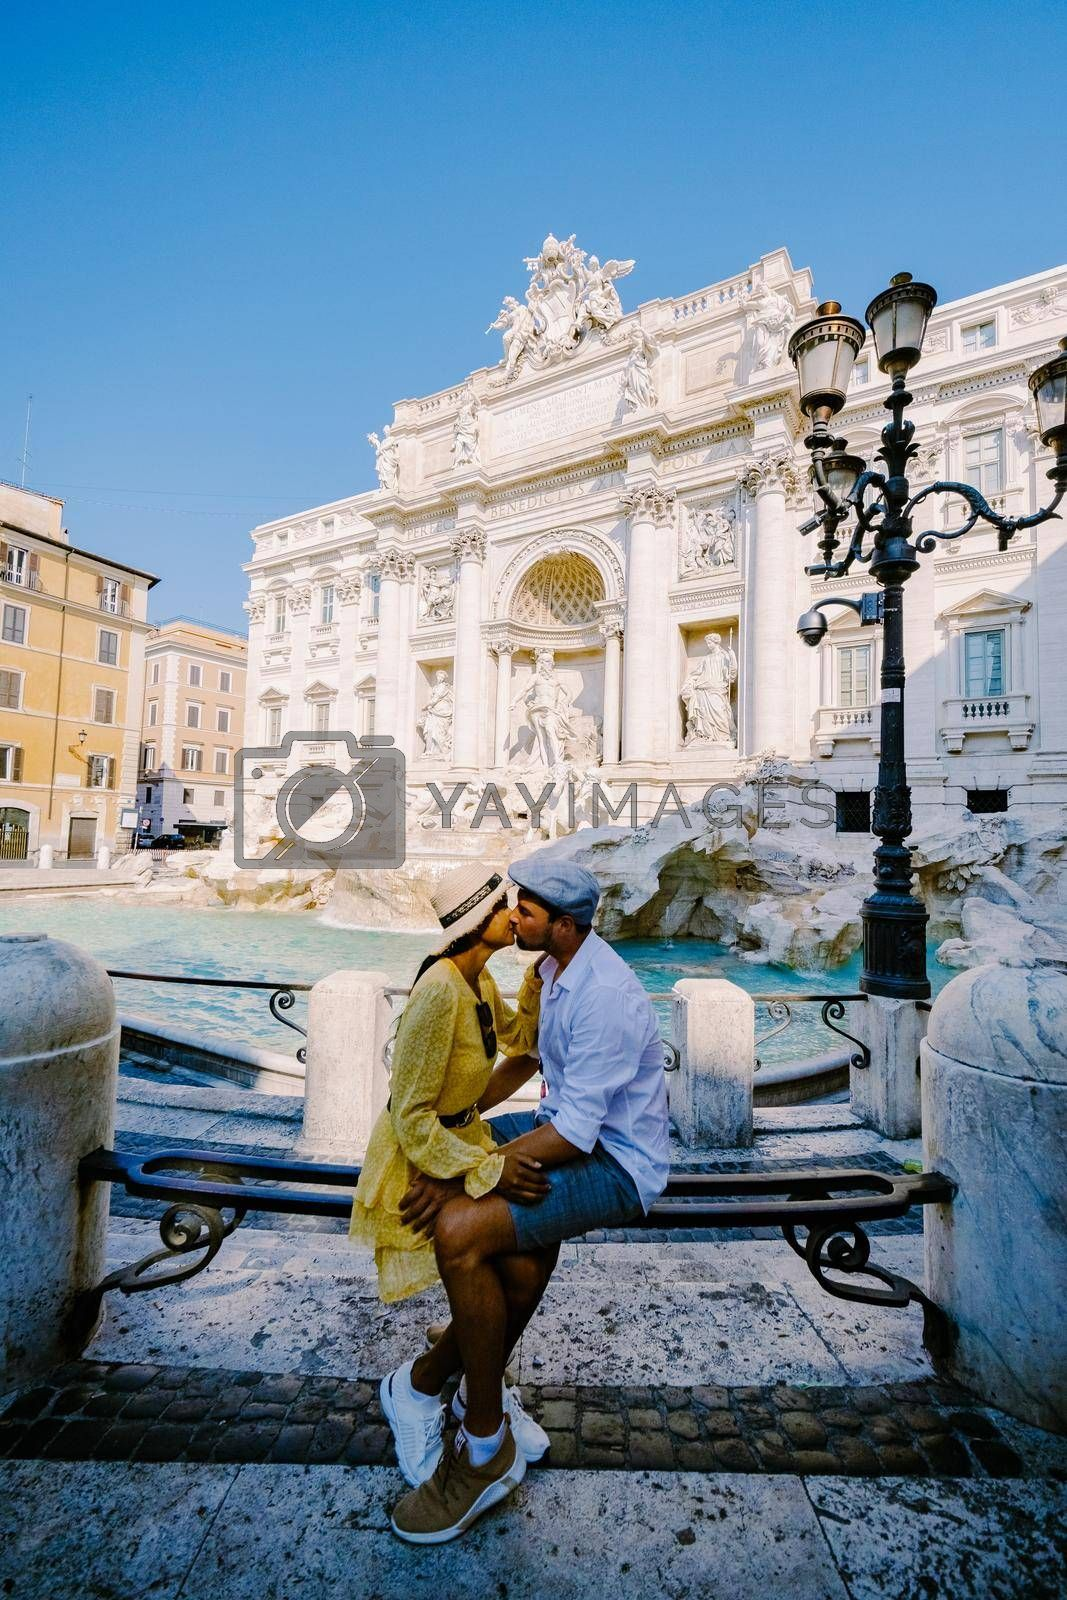 Trevi Fountain, Rome, Italy. City trip couple on a city trip in Rome, view of Di Trevi fountain. Asian woman and European man on a city trip in Rome